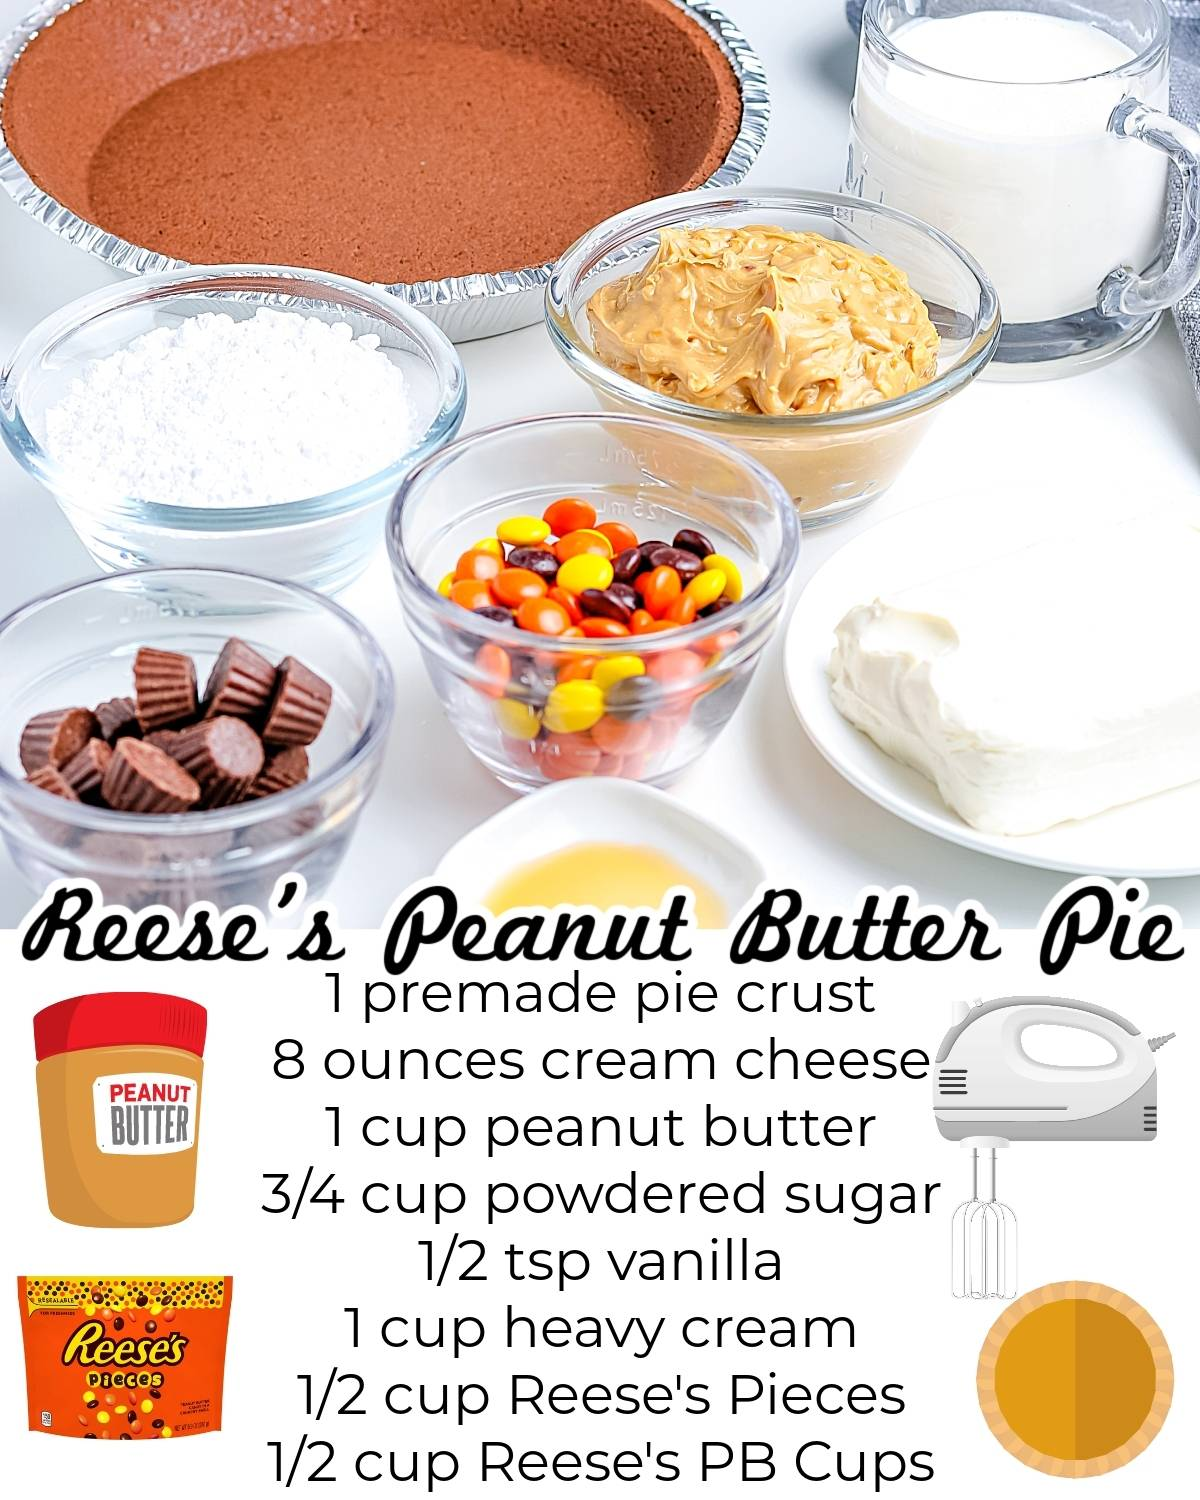 All of the ingredients needed to make this Reese's Pie Recipe.